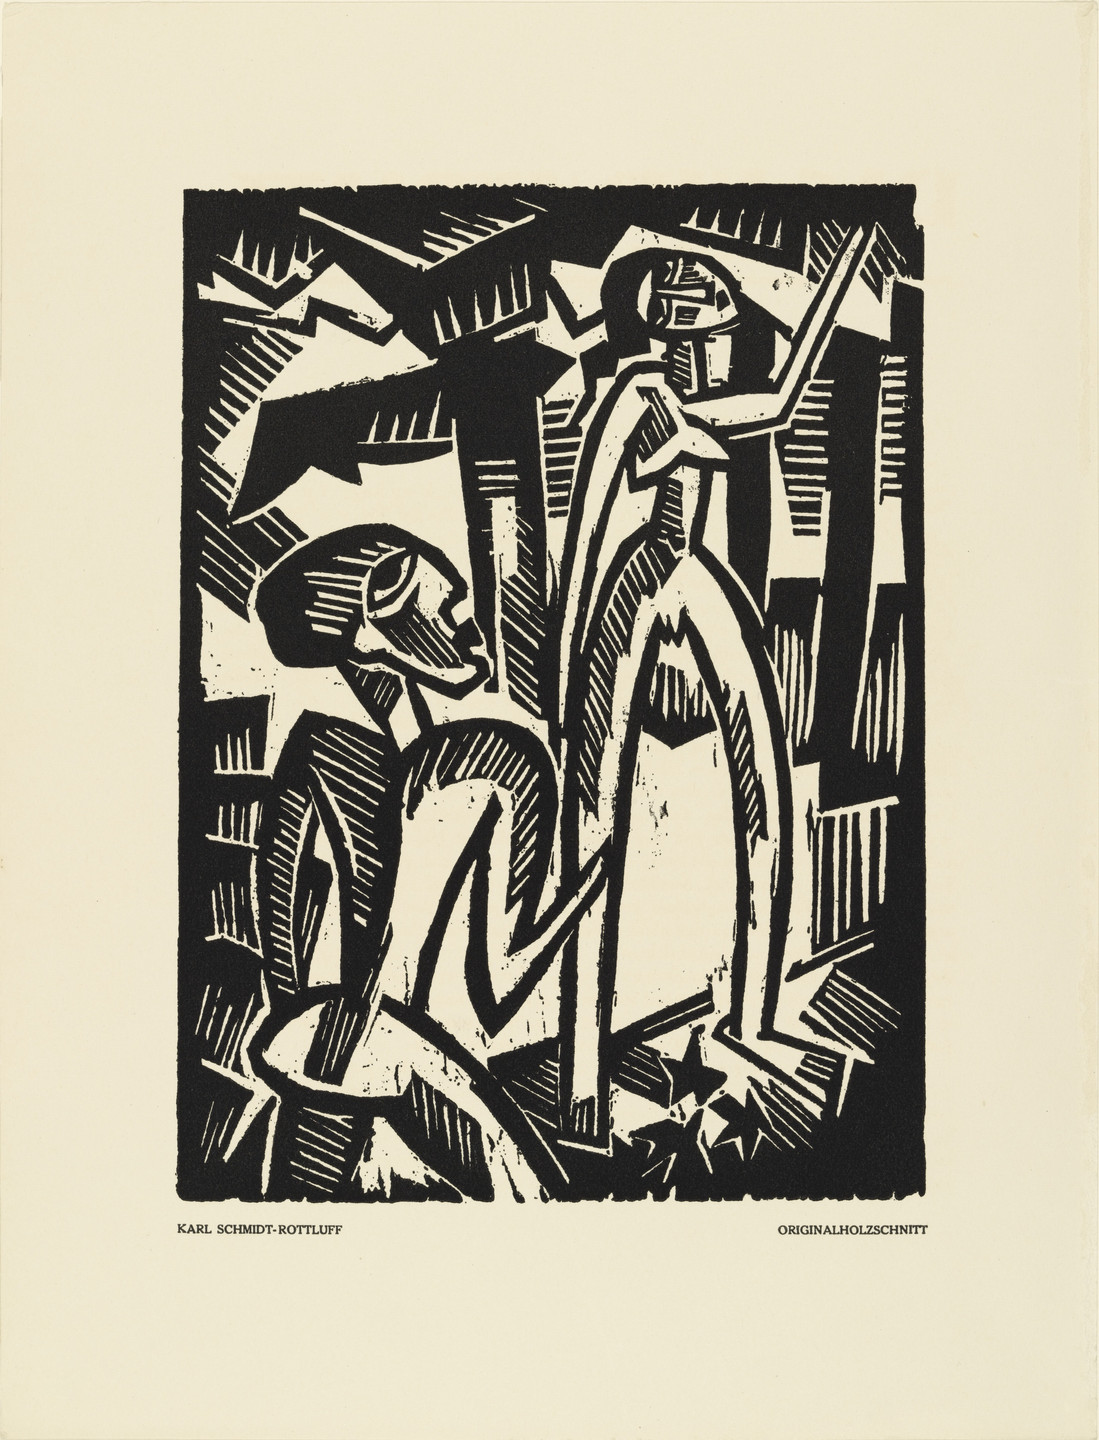 Karl Schmidt-Rottluff. Couple (Menschenpaar) (plate, preceding p. 33) from the periodical Das Kunstblatt, vol. 2, no. 2 (Feb 1918). 1918 (executed 1917)